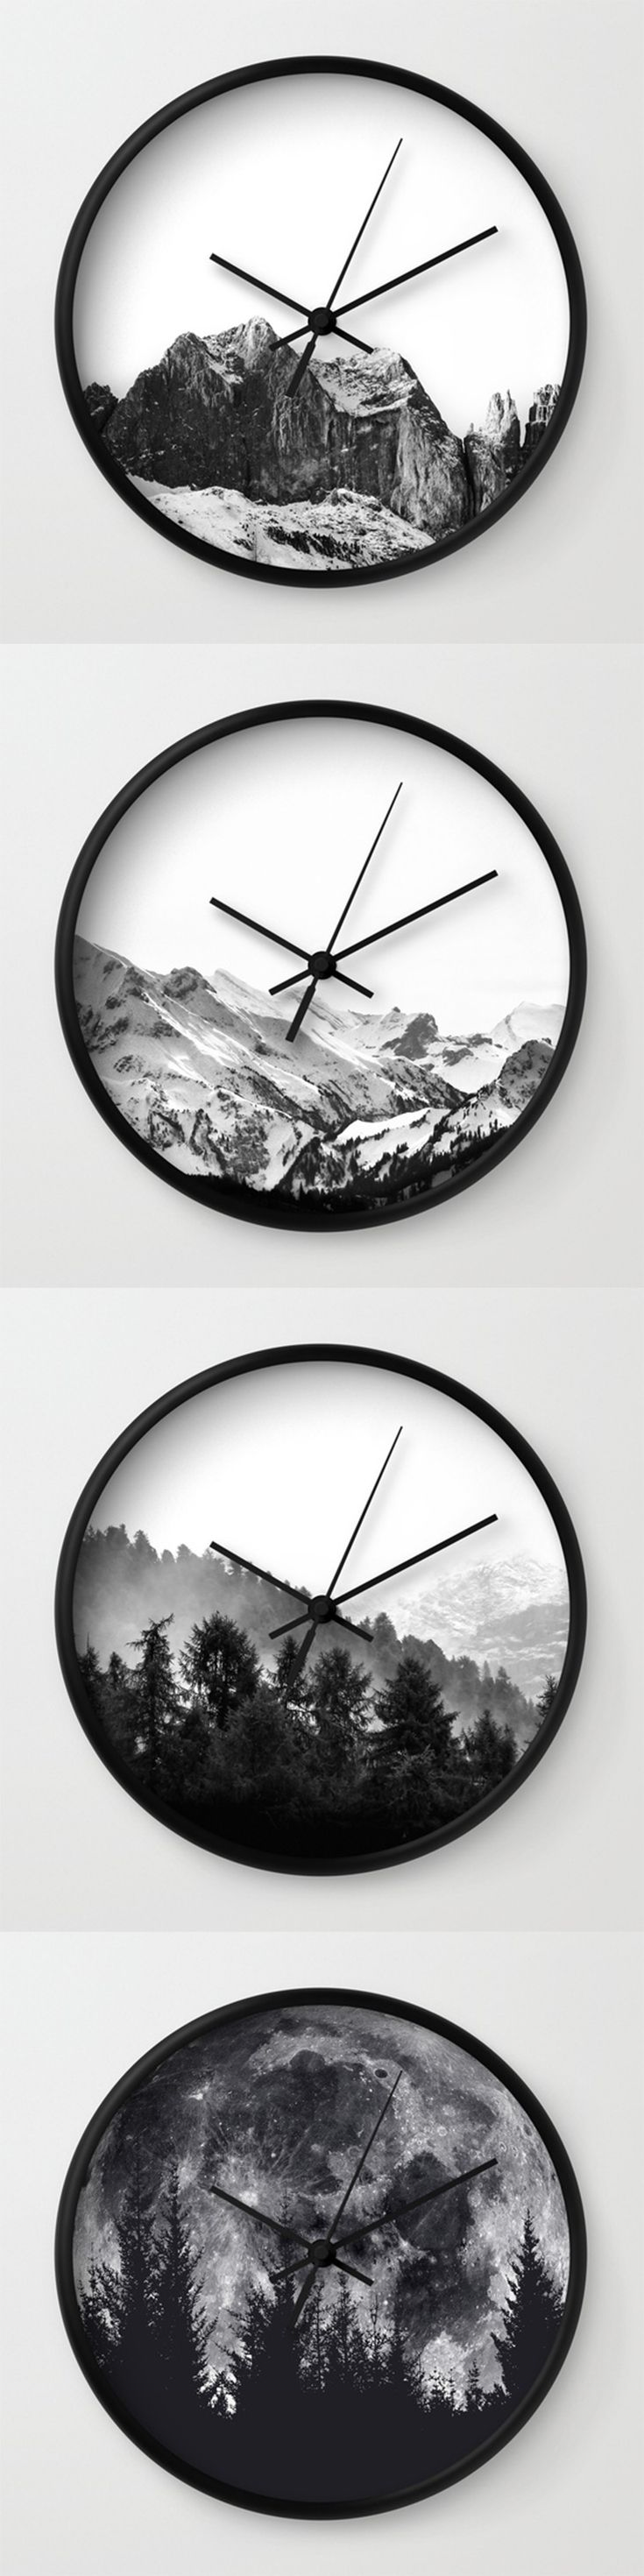 Minimalist Black and White Wall Clocks by Neptune Essentials on Society6 Home Decor, Wall Decor, Wall Clocks, Hanging Clocks, Minimalist Clocks, Modern Designs, Decor Ideas, Bedroom Decor, Living Room Decor, Kitchen Ideas, Trends, Scandinavian, Nordic Designs